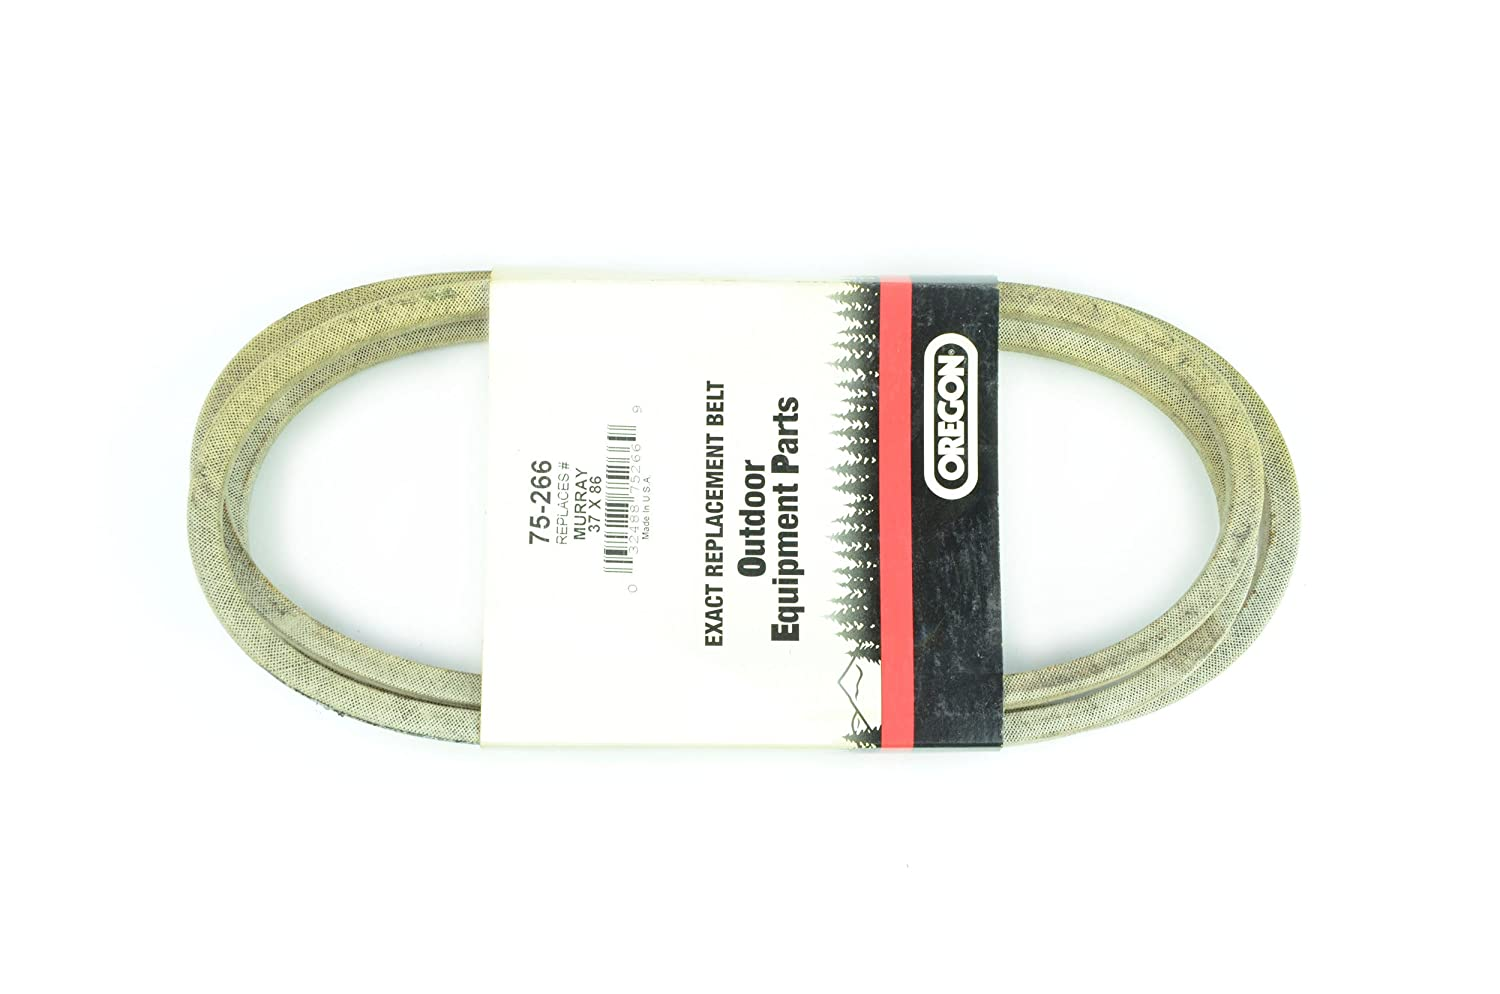 Oregon 75-266 Blade Drive Belt Replacement for Murray 37x86, 037x86MA, 710193